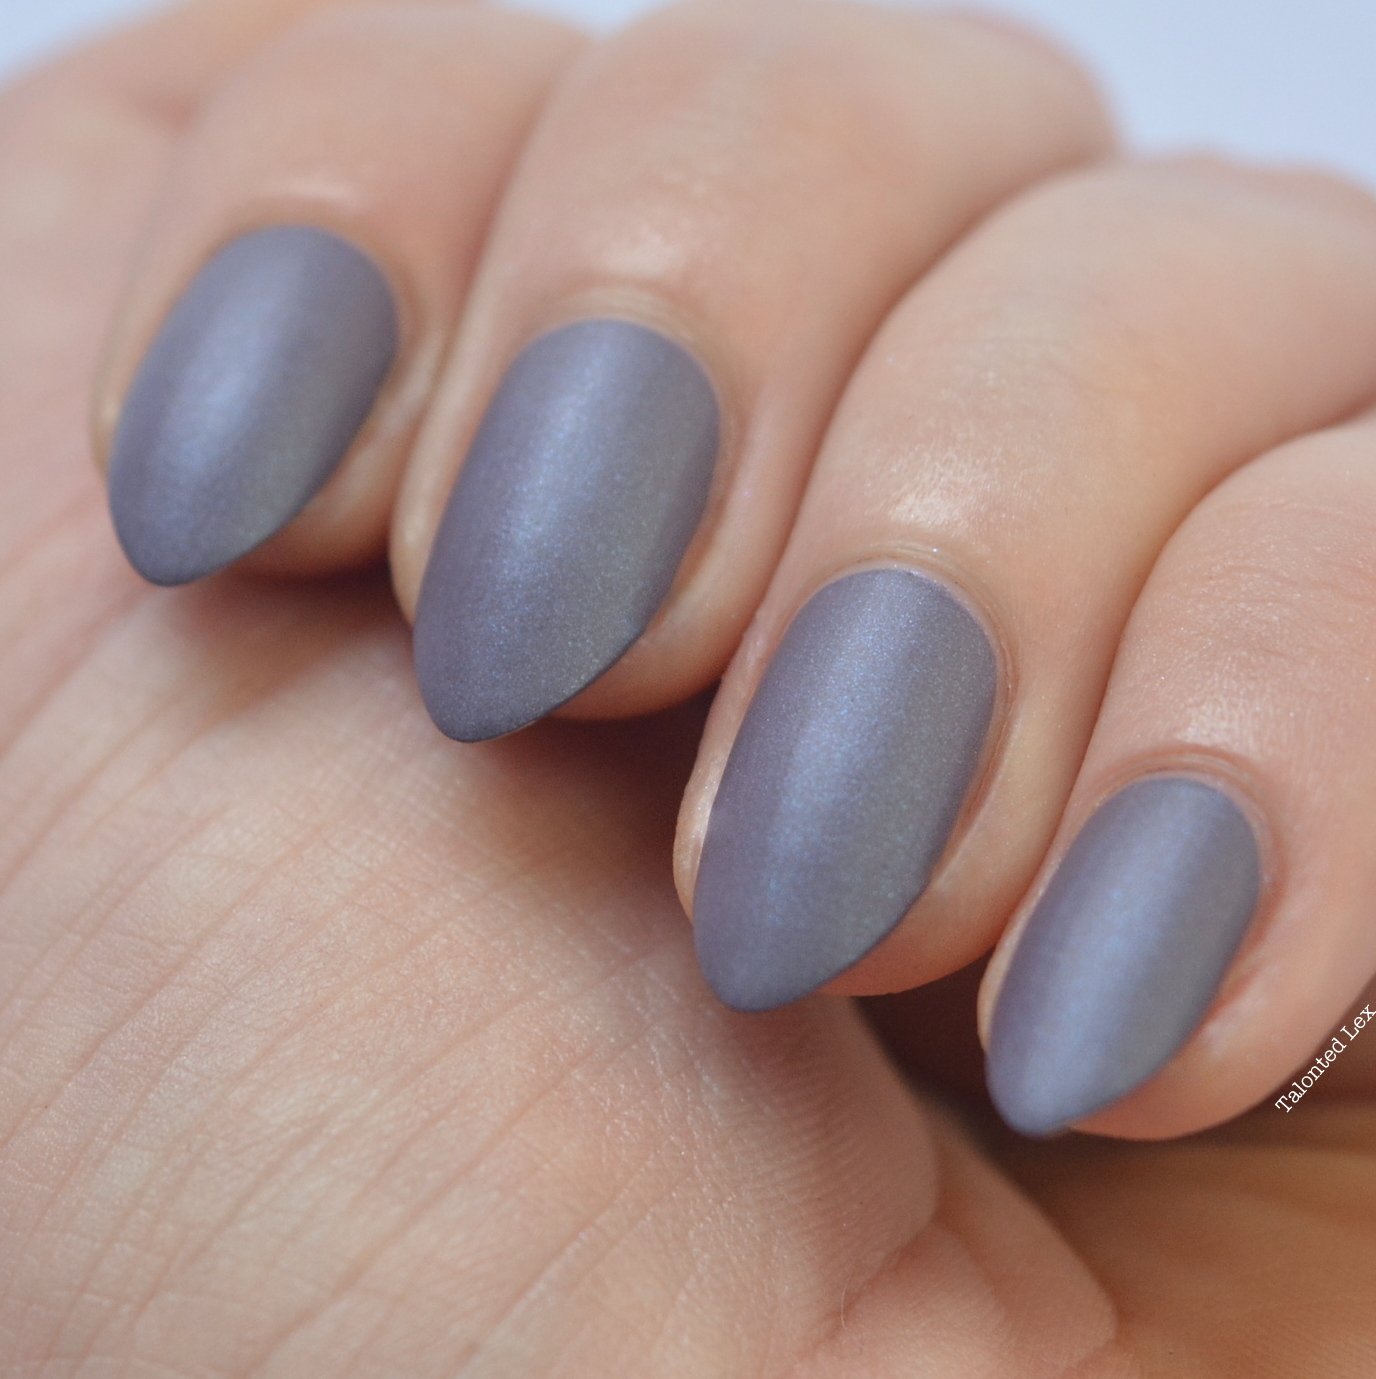 essie-Cashmere-Collection-matte-review-swatches-coat-couture-talonted-lex